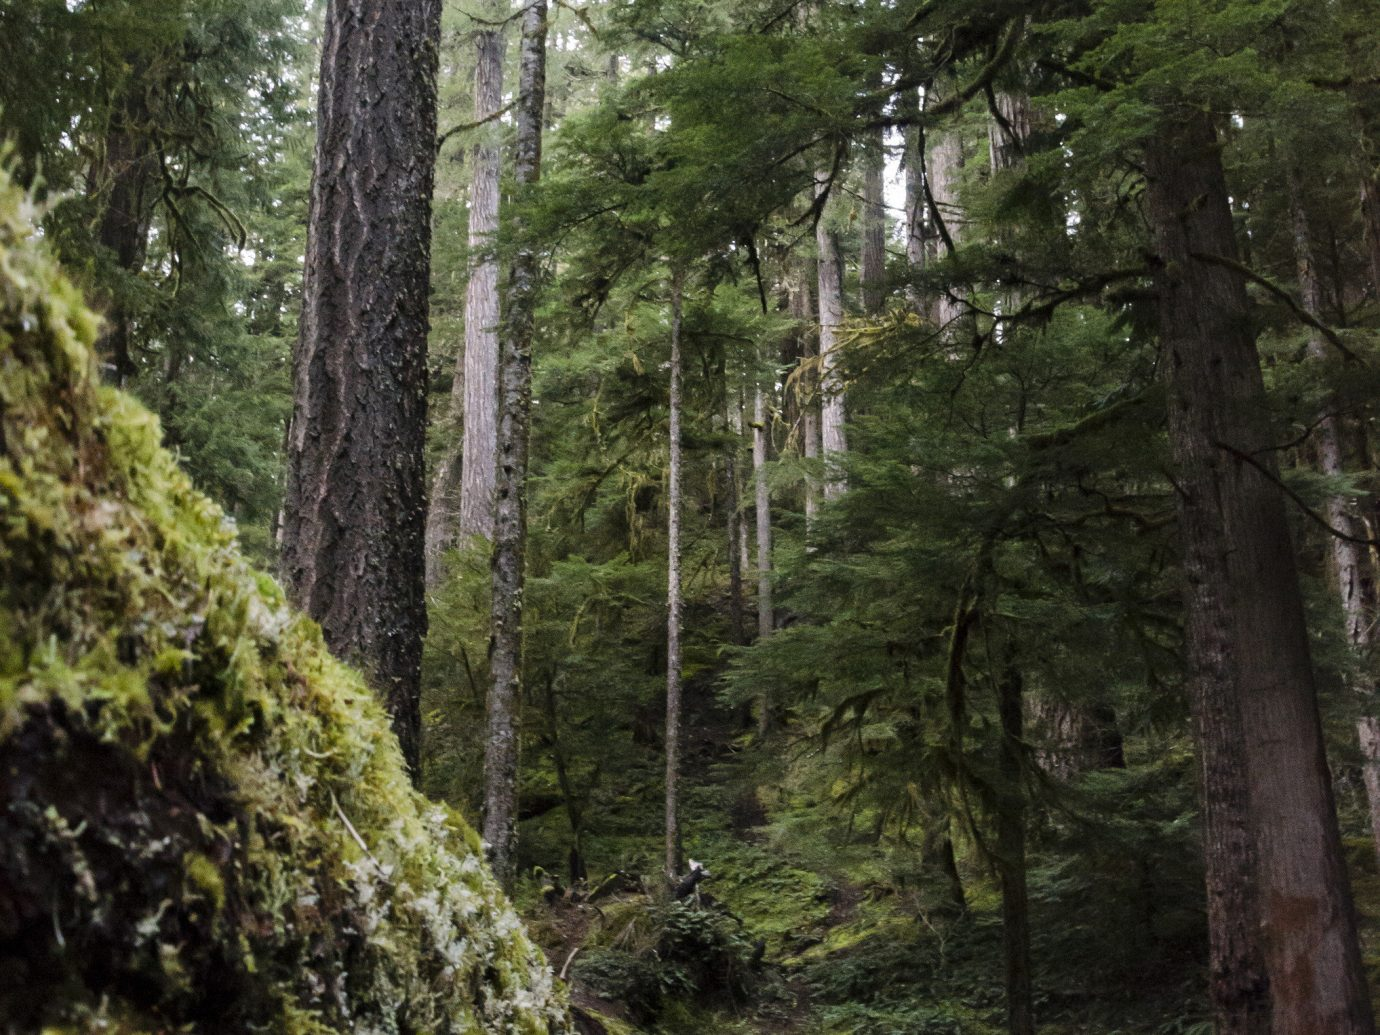 Scenic views Travel Tips tree outdoor habitat wilderness natural environment ecosystem Forest wood woodland woody plant old growth forest trail mountain plant rainforest walking wooded area surrounded